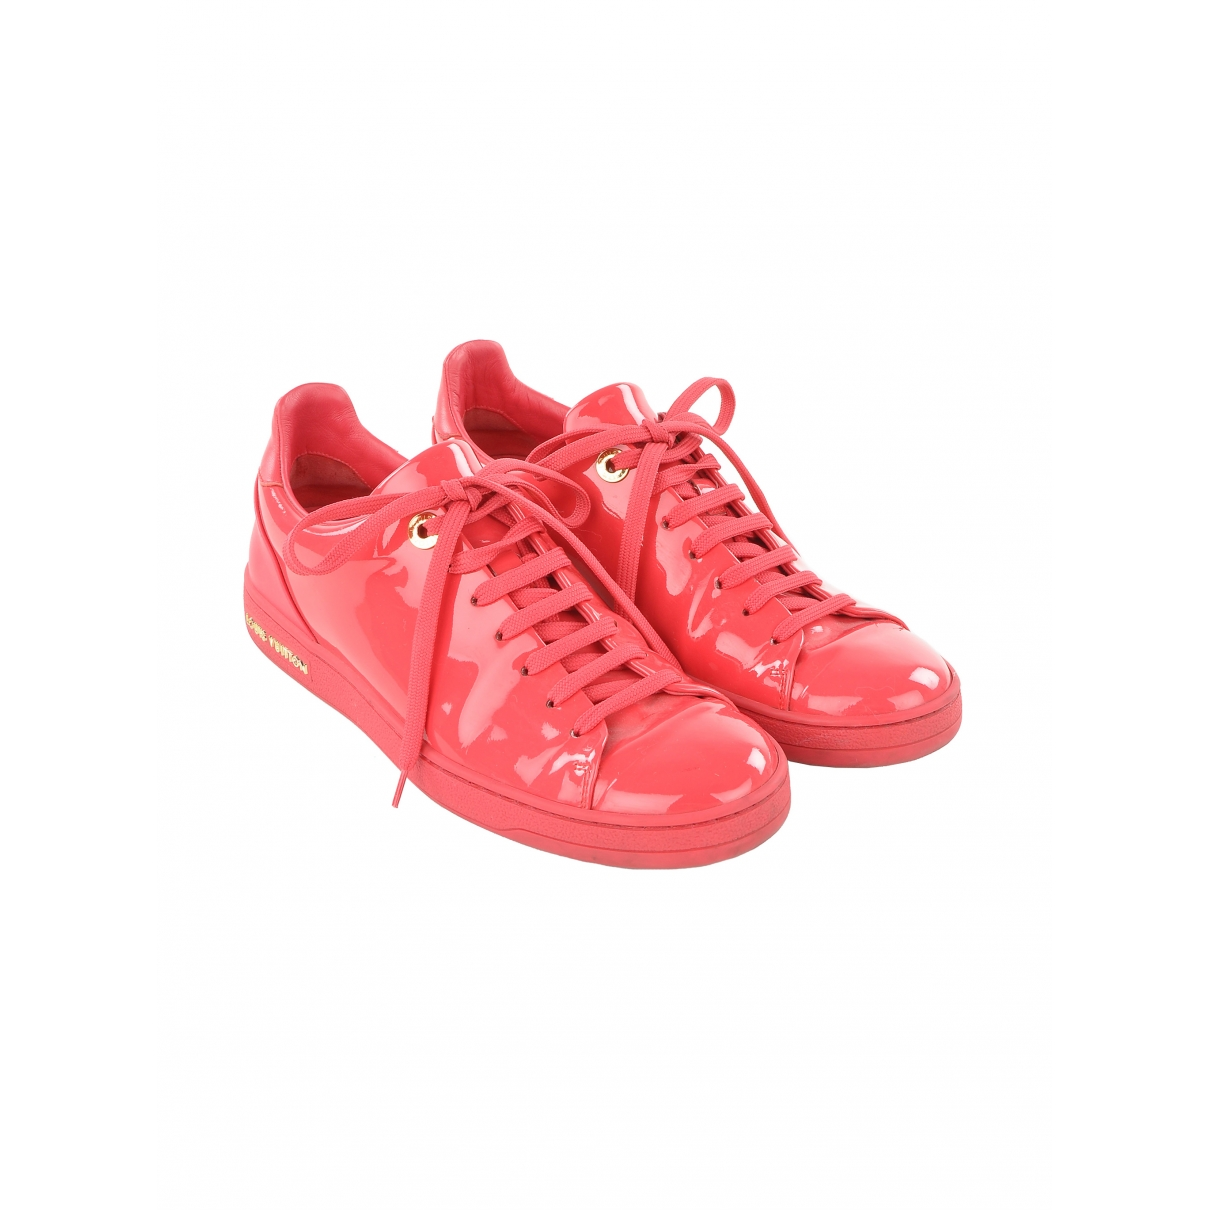 Louis Vuitton FrontRow Pink Patent leather Trainers for Women 36.5 EU